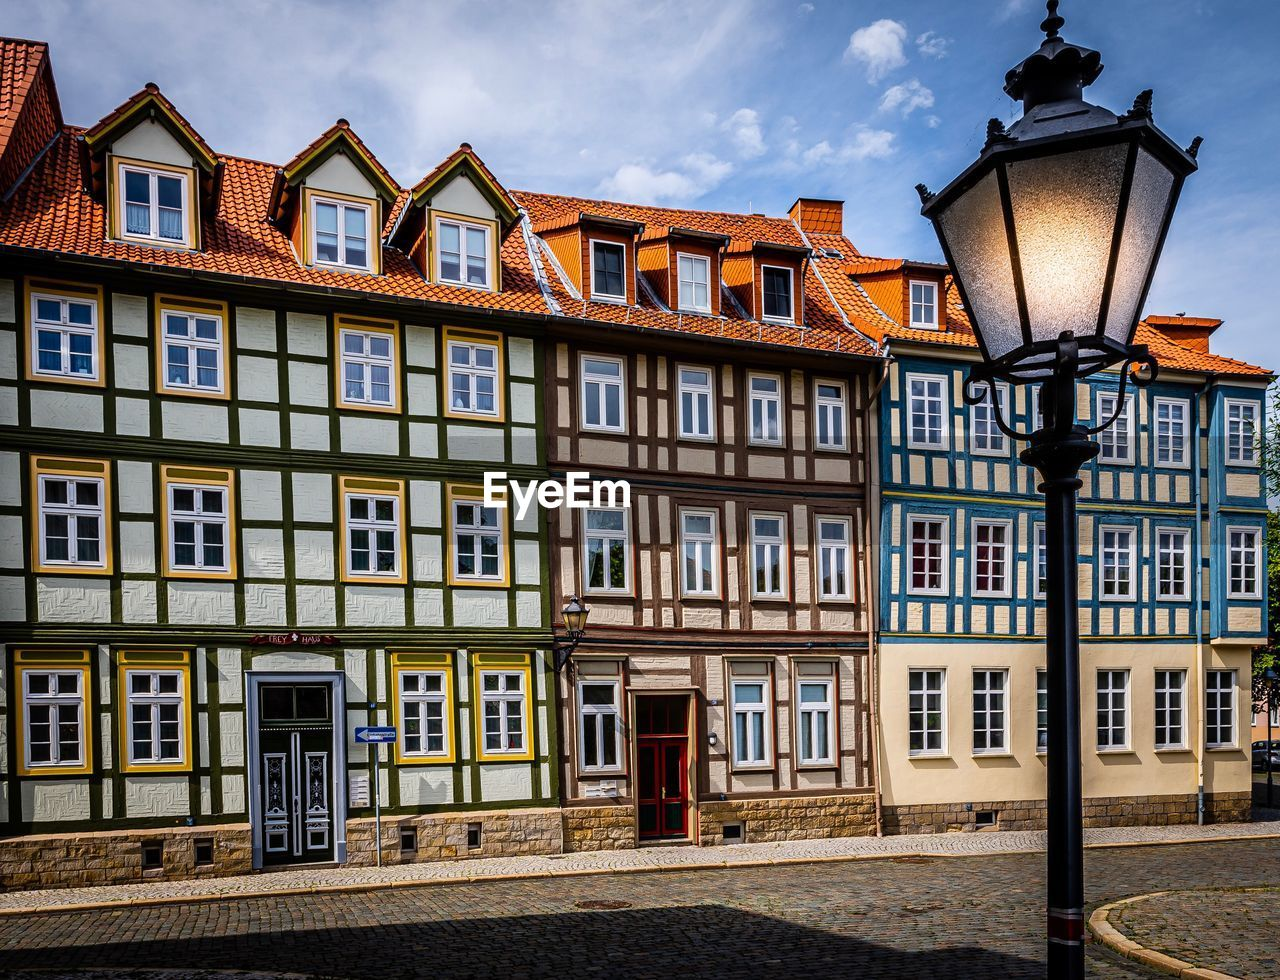 building exterior, architecture, built structure, street, building, lighting equipment, street light, window, city, residential district, no people, house, sky, in a row, cloud - sky, row house, day, outdoors, nature, side by side, electric lamp